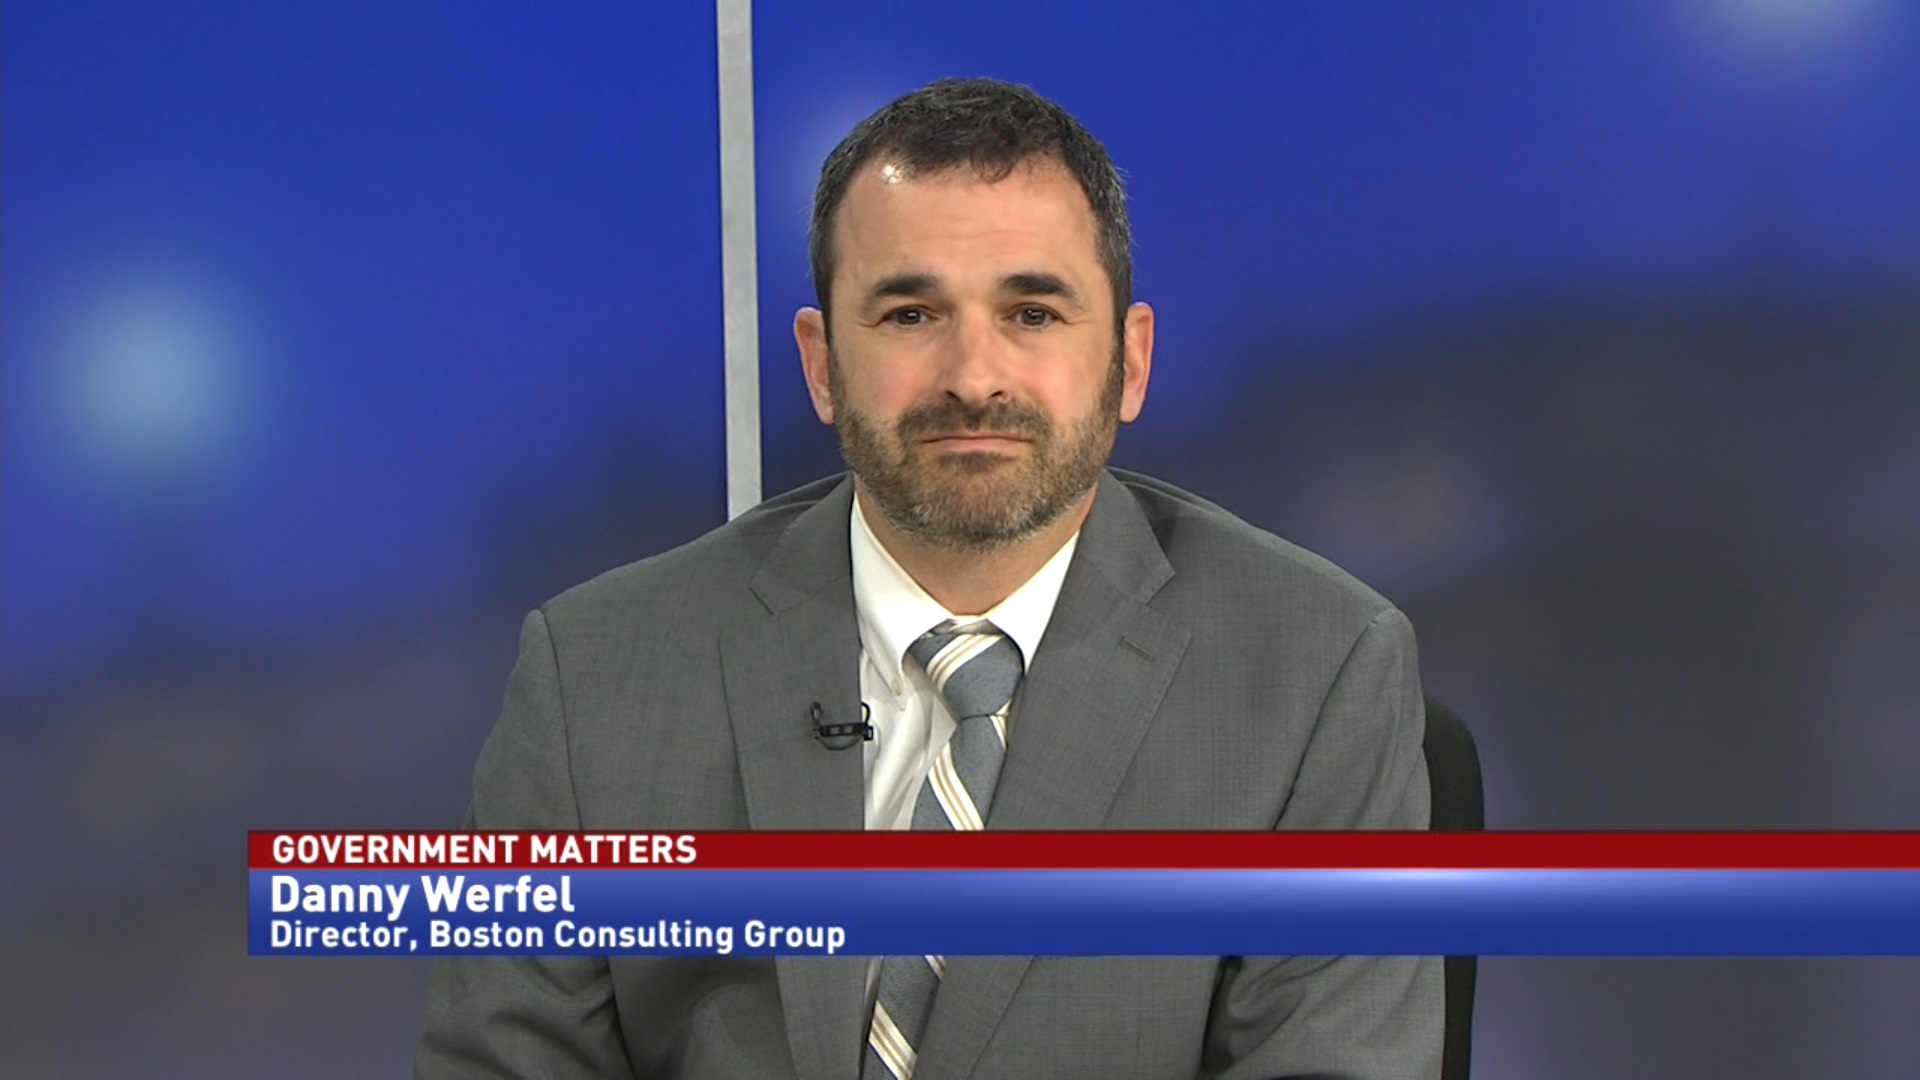 Key management elements of the FY20 budget request